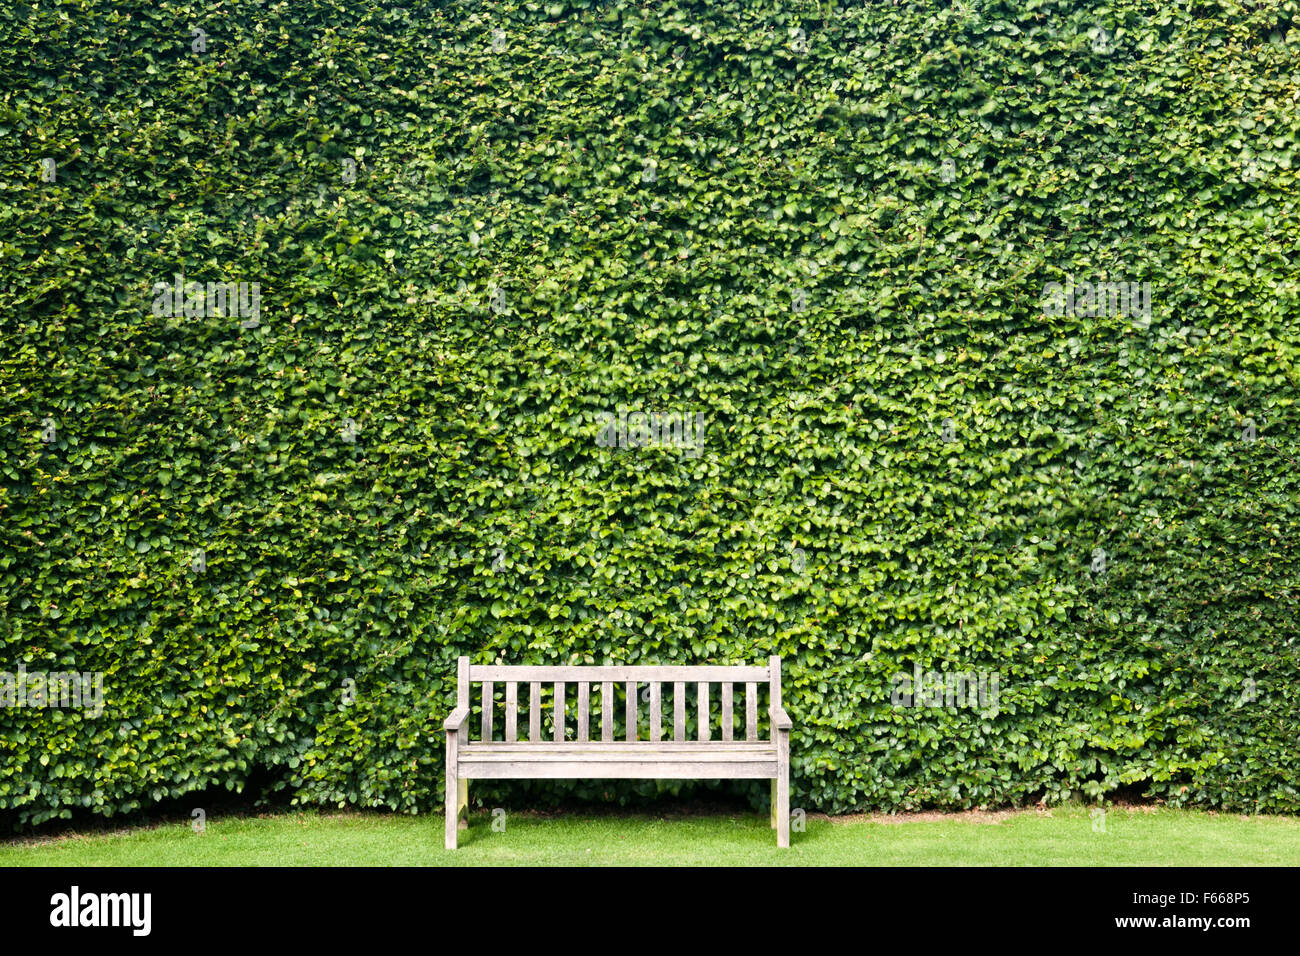 A wooden garden bench in front of a tall hedge of clipped beech, UK - Stock Image